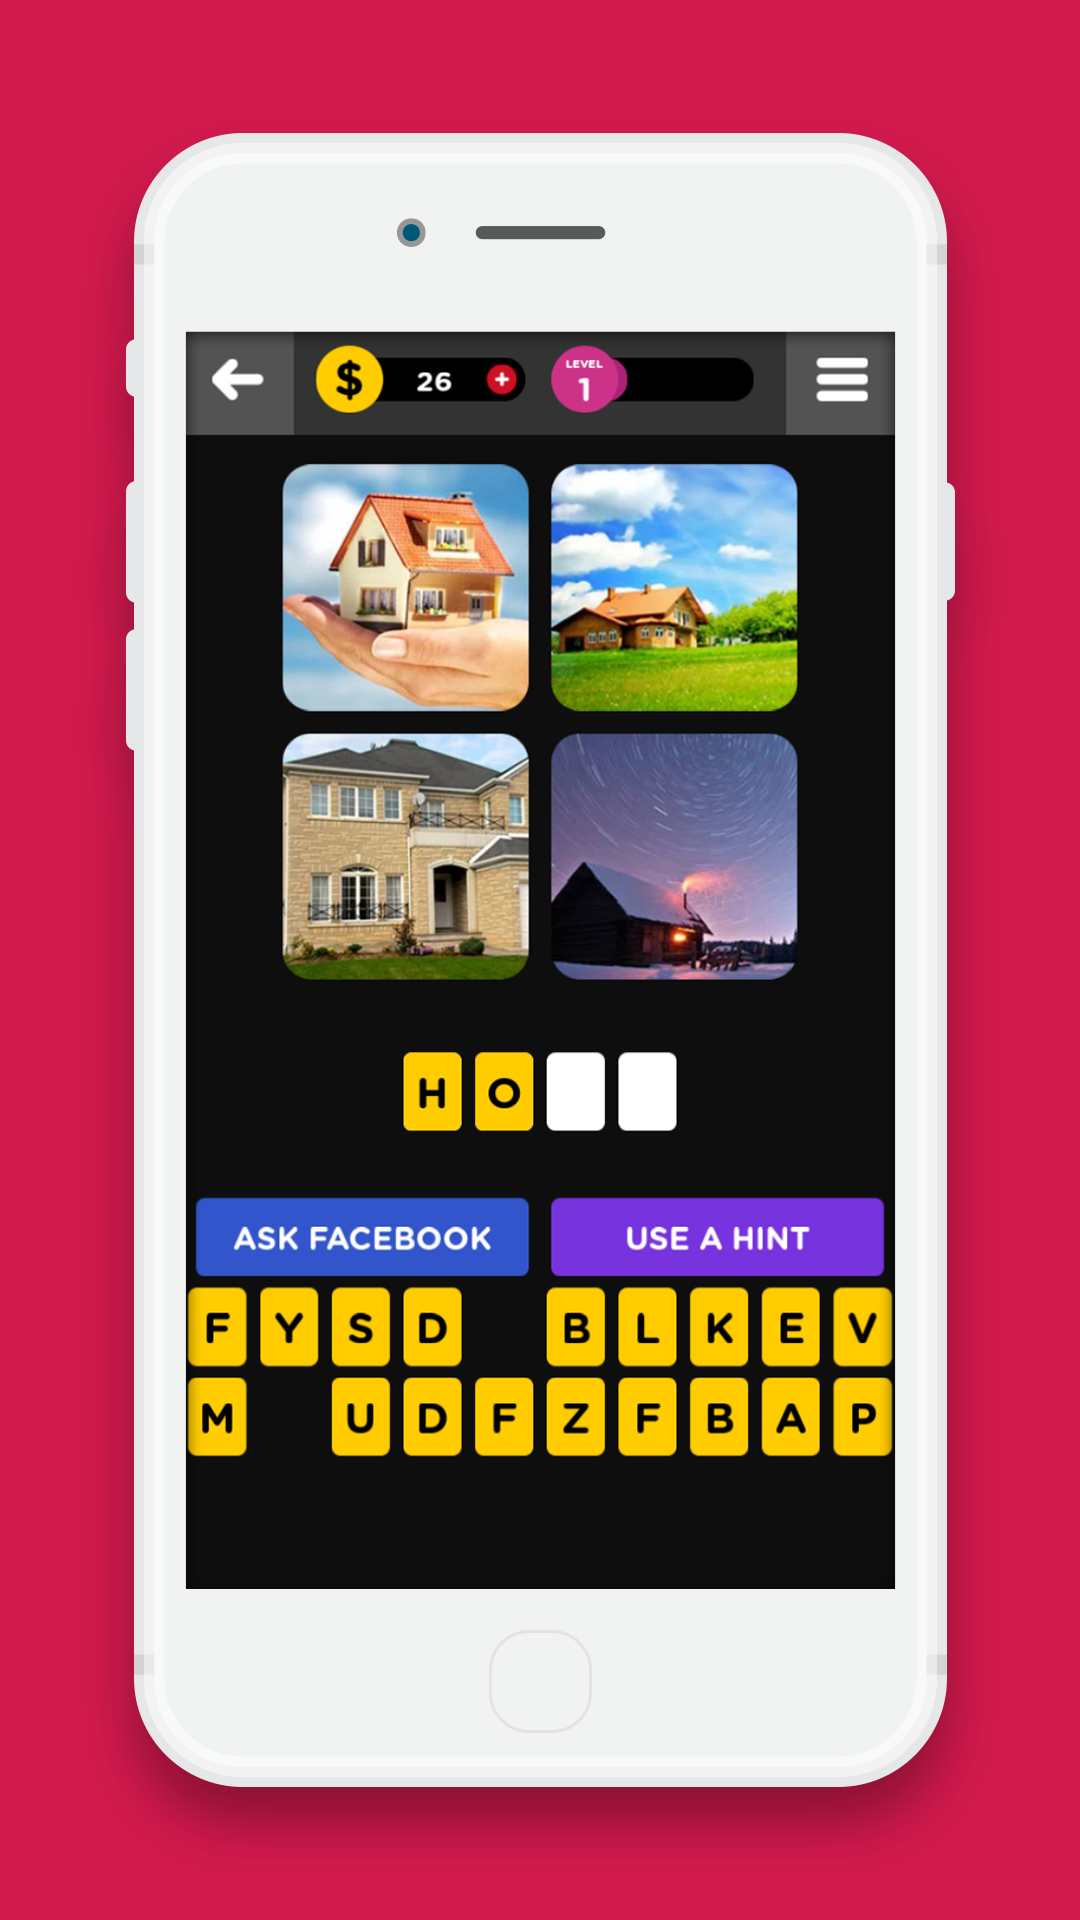 Guess The Song Guess, Song Logic games, Game app, Games